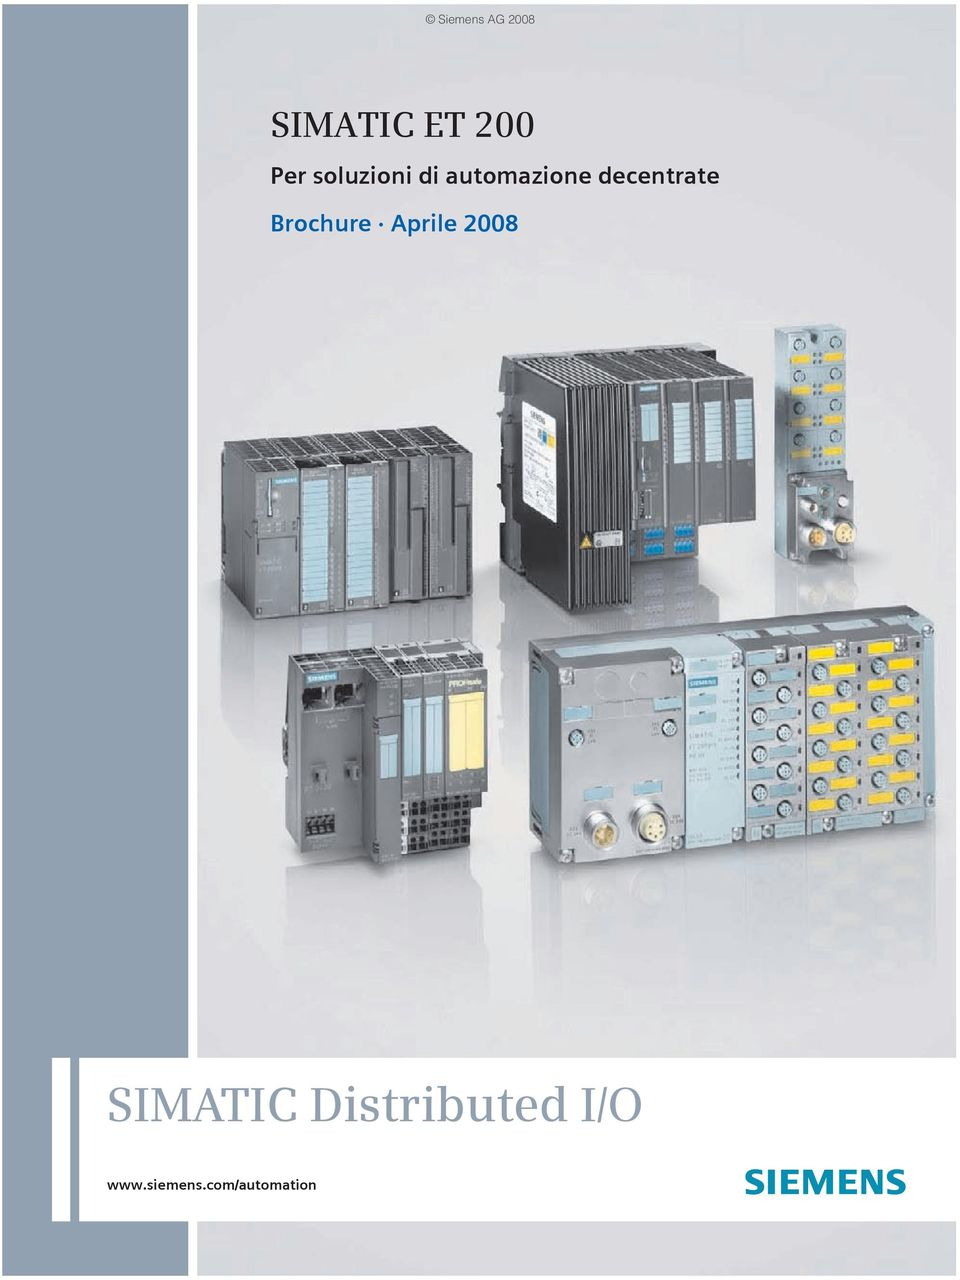 Aprile 2008 SIMATIC Distributed